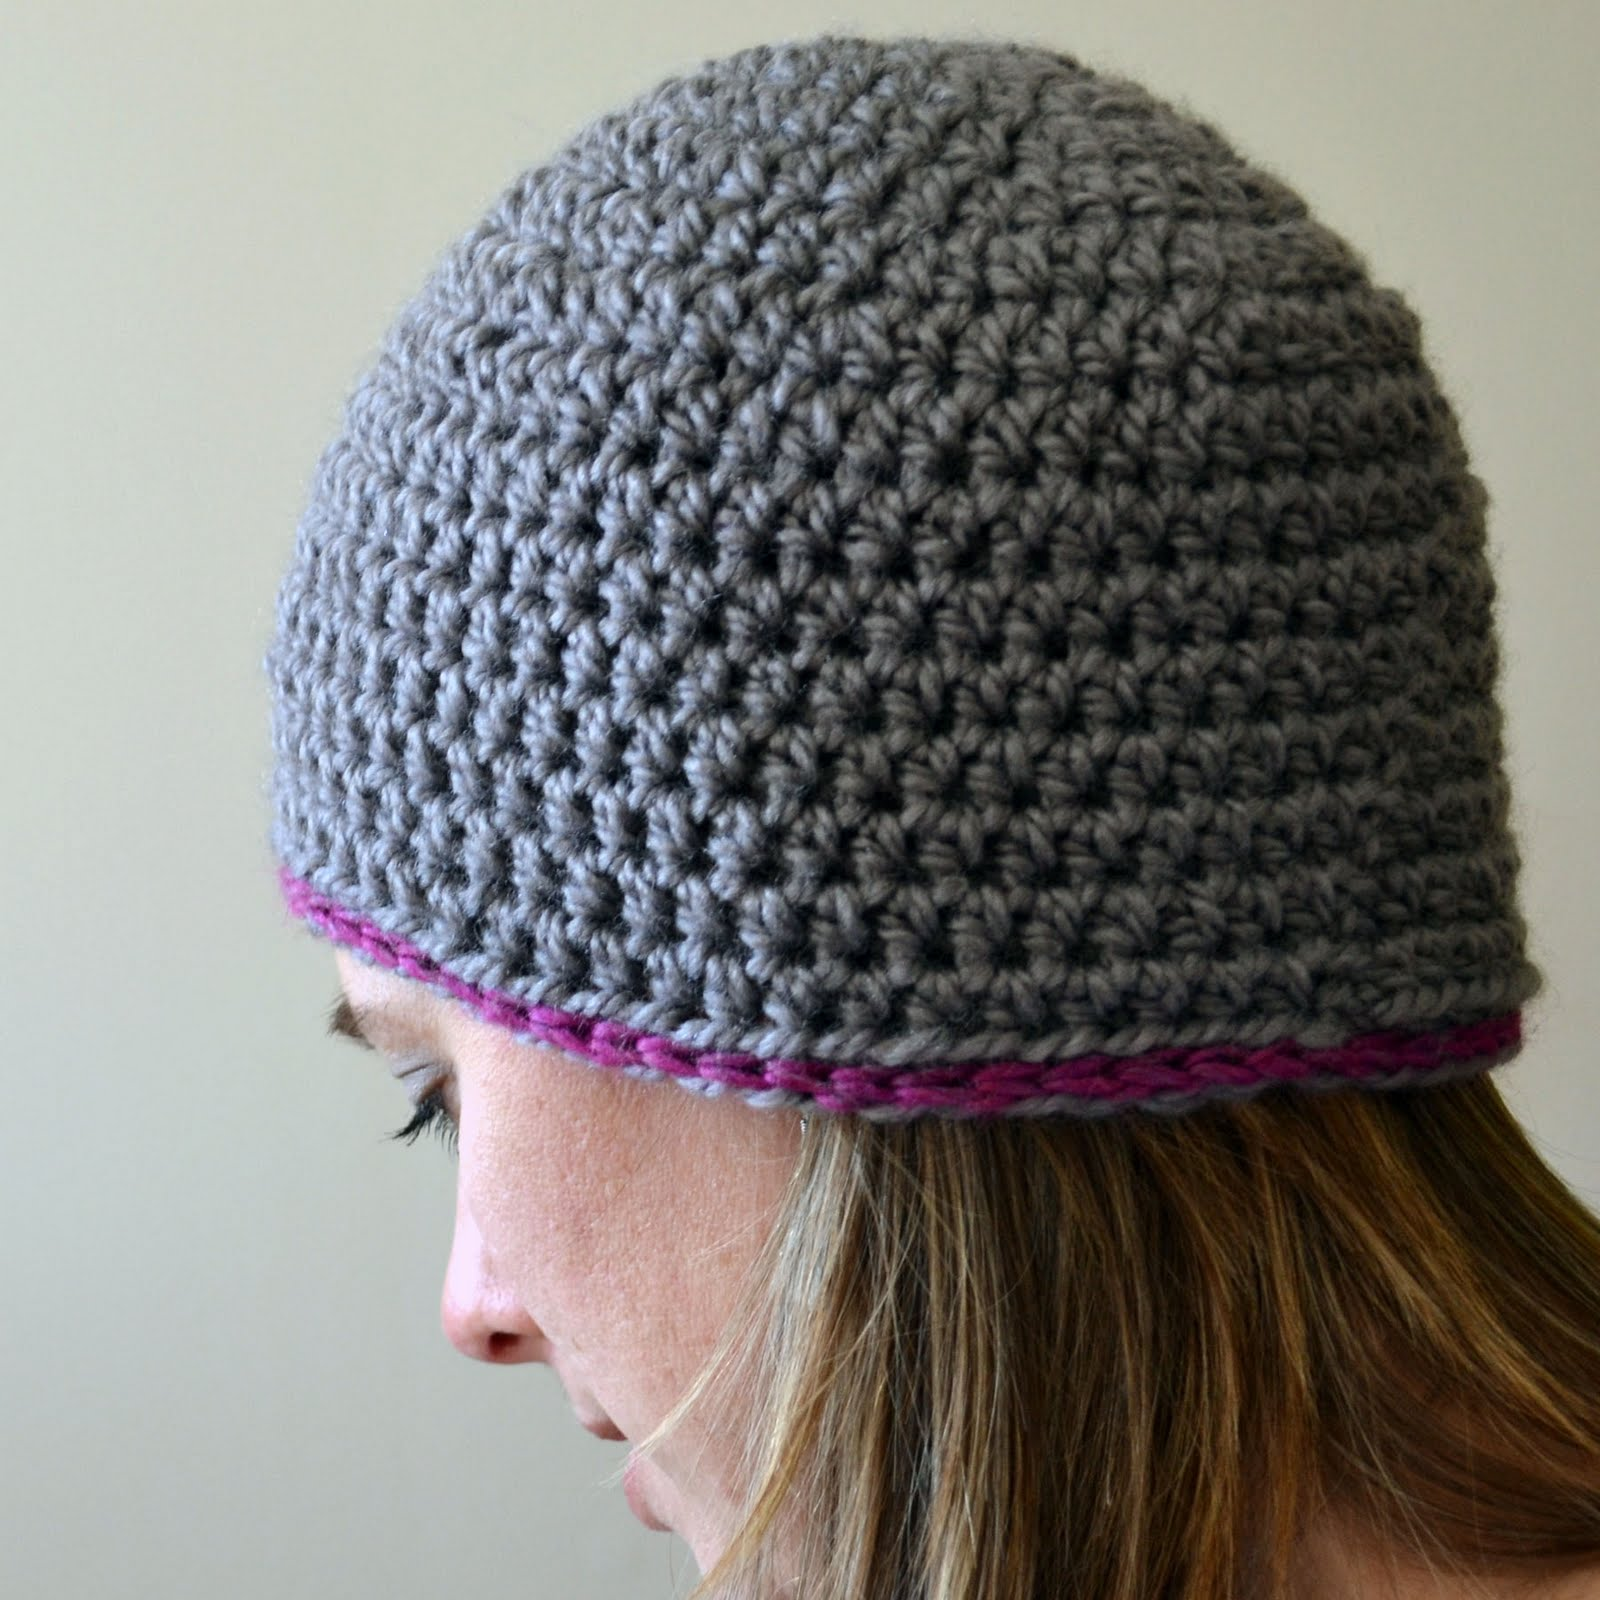 Free Patterns Crochet Beanies : Crochet in Color: Chunky Beanie Pattern